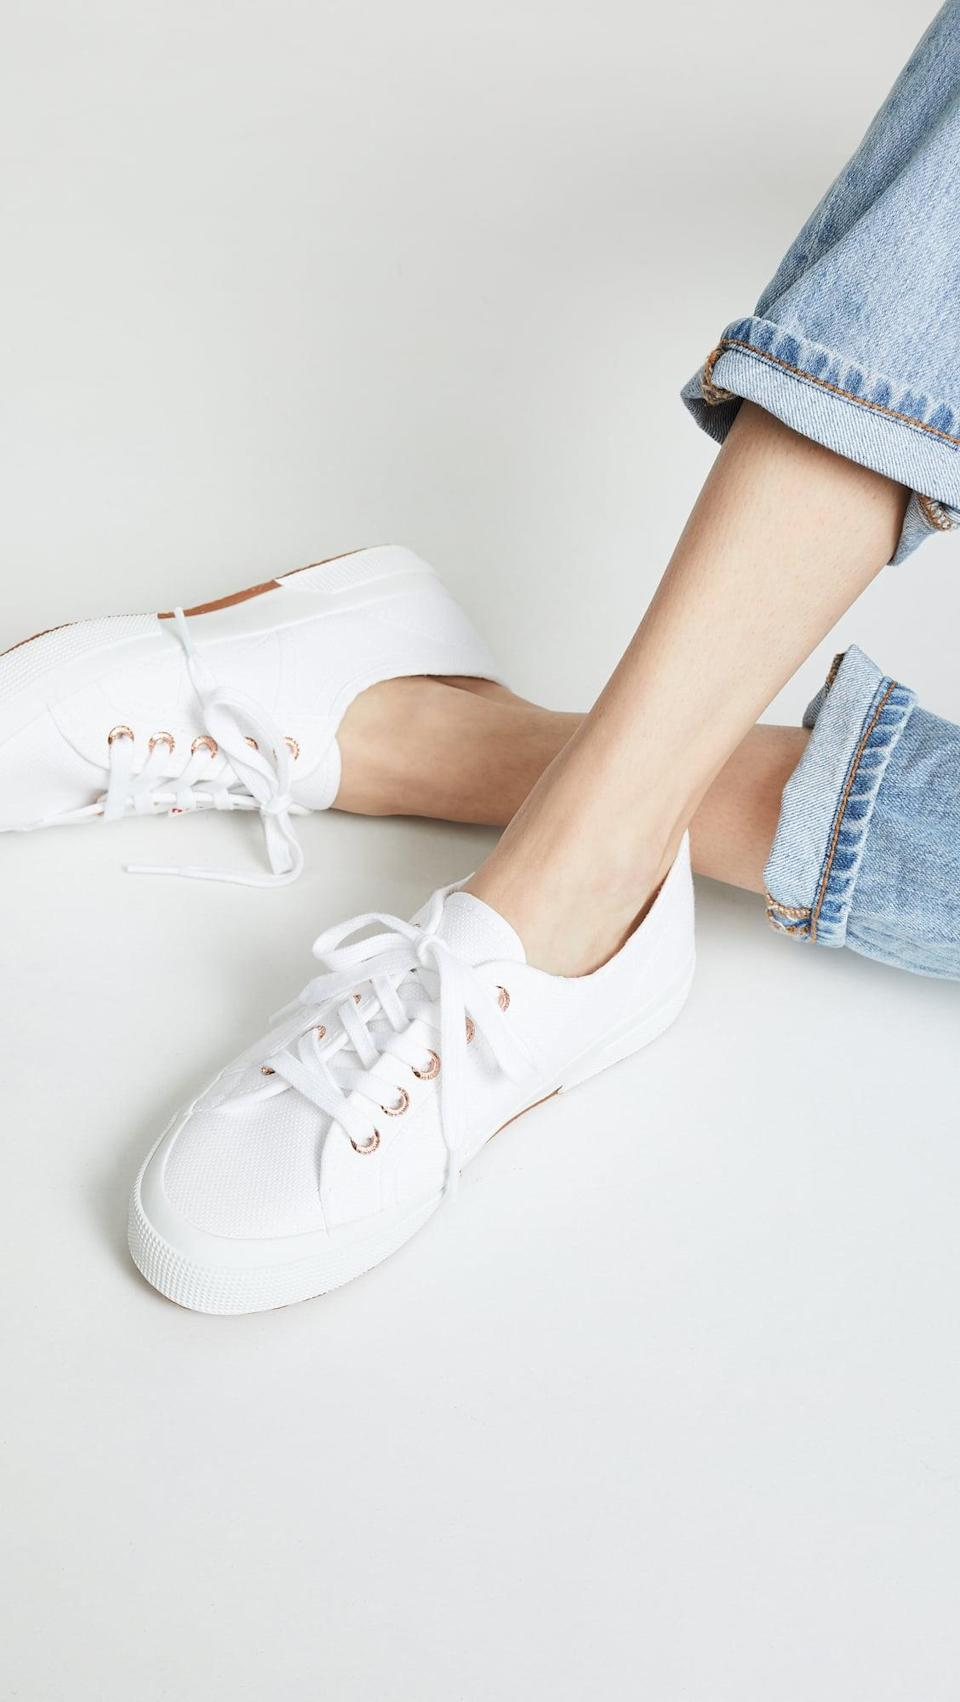 "<p><a href=""https://www.popsugar.com/buy/Superga-2750-Cotu-Classic-Sneakers-520427?p_name=Superga%202750%20Cotu%20Classic%20Sneakers&retailer=shopbop.com&pid=520427&price=65&evar1=fab%3Aus&evar9=44311634&evar98=https%3A%2F%2Fwww.popsugar.com%2Ffashion%2Fphoto-gallery%2F44311634%2Fimage%2F46921958%2FSuperga-2750-Cotu-Classic-Sneakers&list1=shopping%2Cshoes%2Csneakers%2Choliday%2Cgift%20guide%2Ceditors%20pick%2Cfashion%20gifts%2Cgifts%20for%20women&prop13=api&pdata=1"" class=""link rapid-noclick-resp"" rel=""nofollow noopener"" target=""_blank"" data-ylk=""slk:Superga 2750 Cotu Classic Sneakers"">Superga 2750 Cotu Classic Sneakers </a> ($65)</p> <p>""I love a good white leather sneaker, but a canvas pair is always good to have on hand too. Not only are they supereasy to travel with, but they're easy to throw in the washing machine and clean, so you'll own them forever."" - Krista Jones, associate editor, Shop</p>"